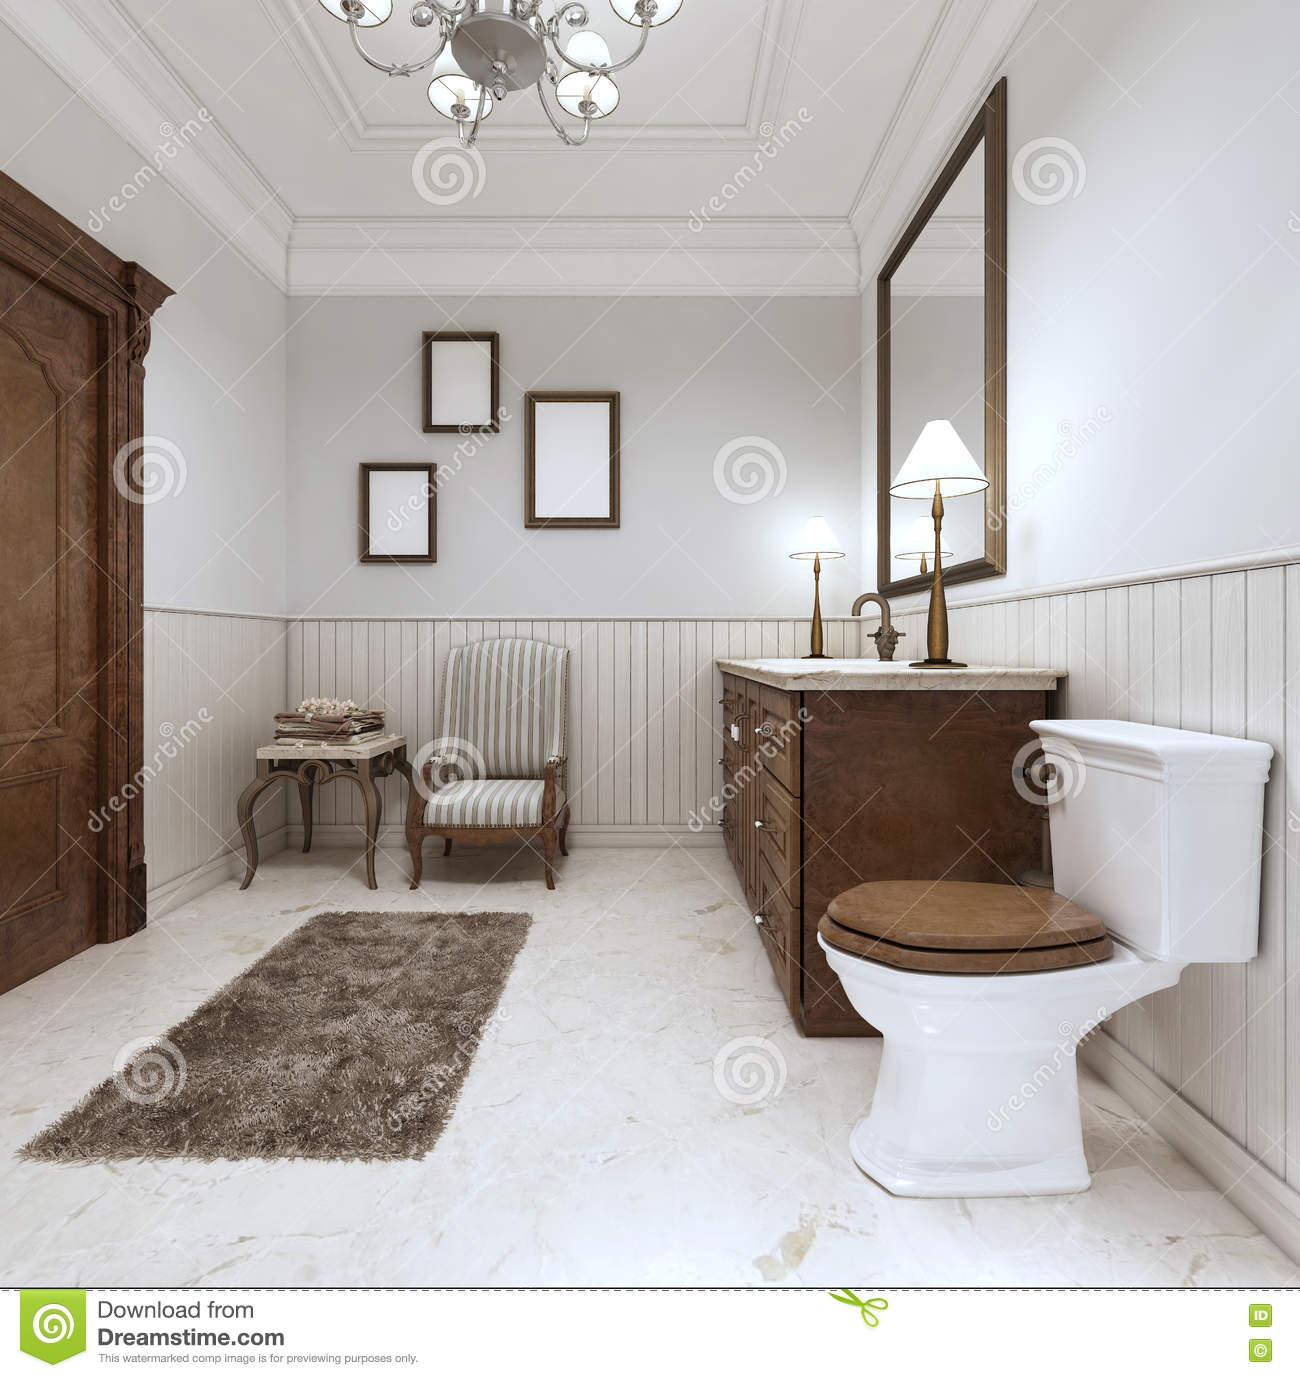 Bathroom In Modern Style With Sink Bath And Toilet With A Comfor ...